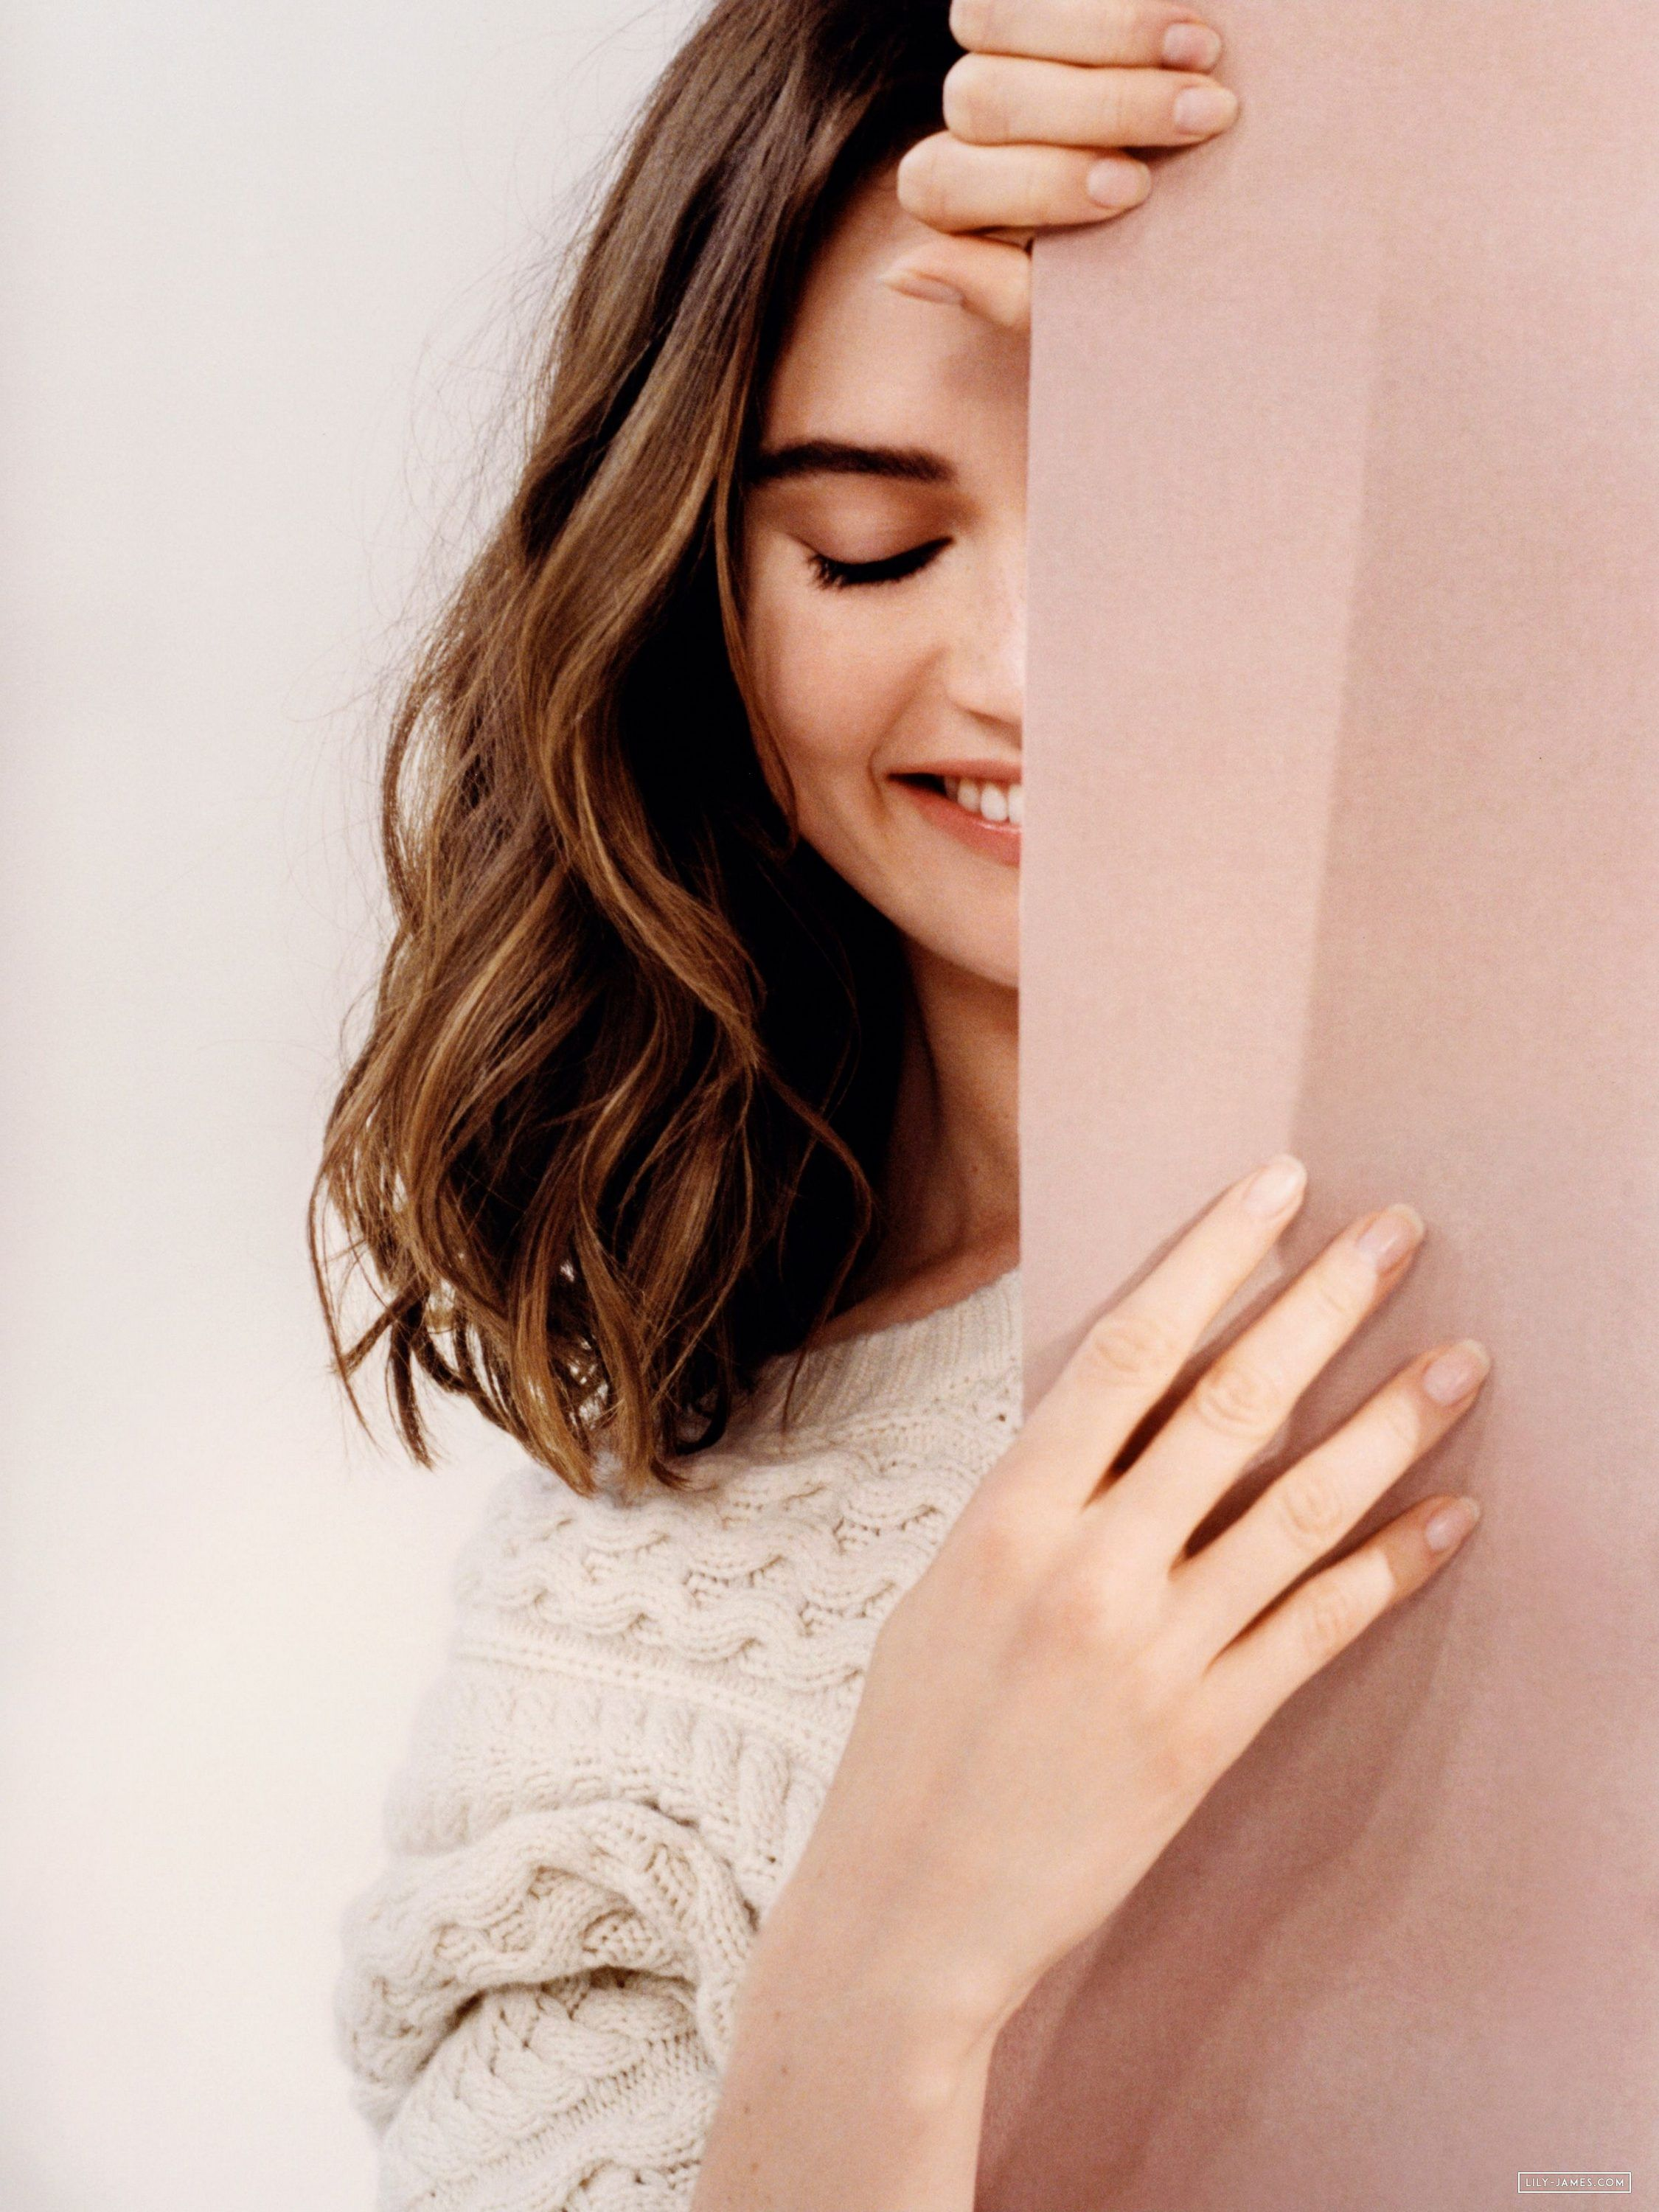 My Burberry Blush Lookbook 009 Lily James Online Photo